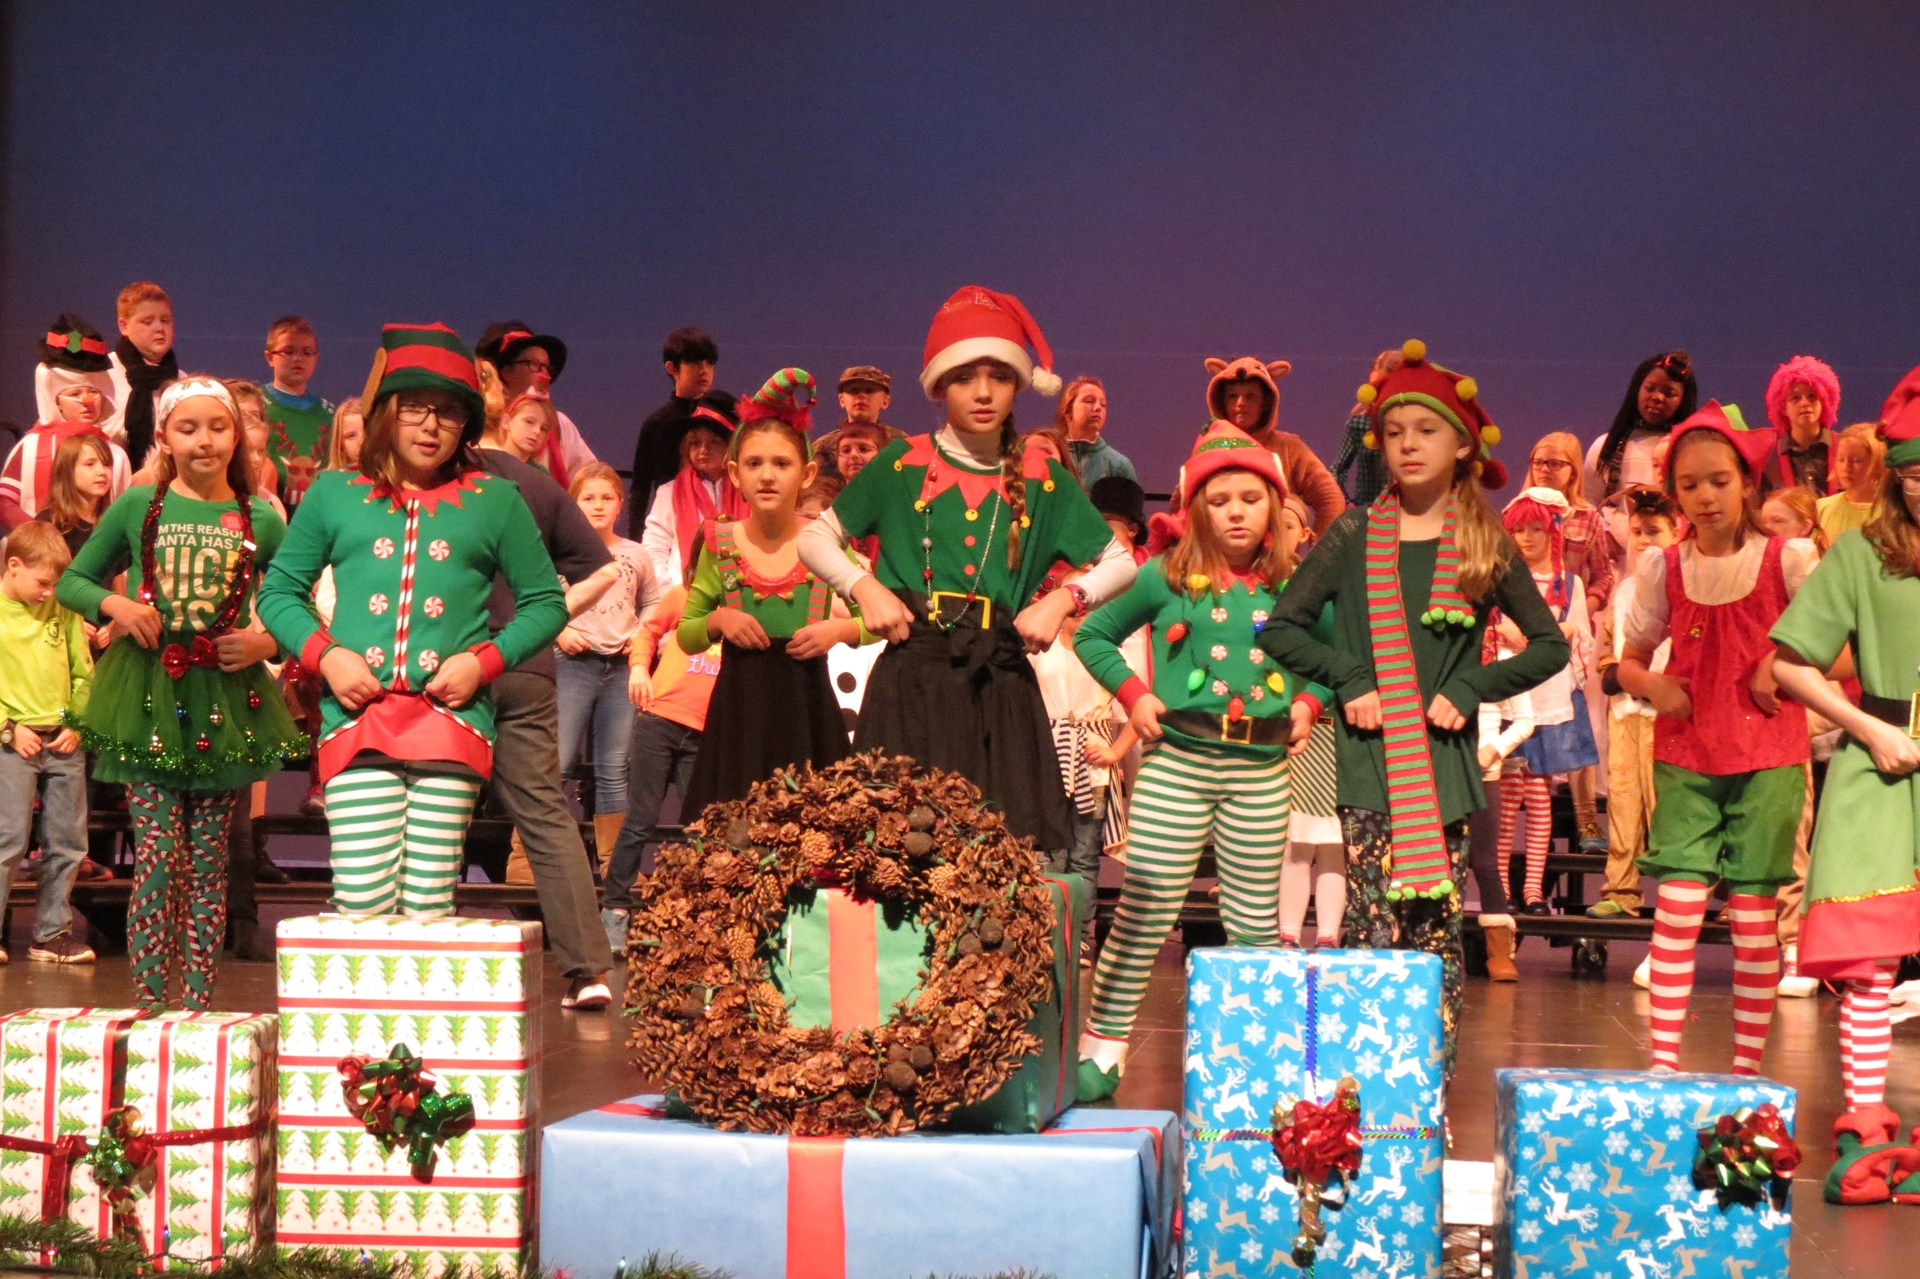 Stars holiday performances of elves dancing